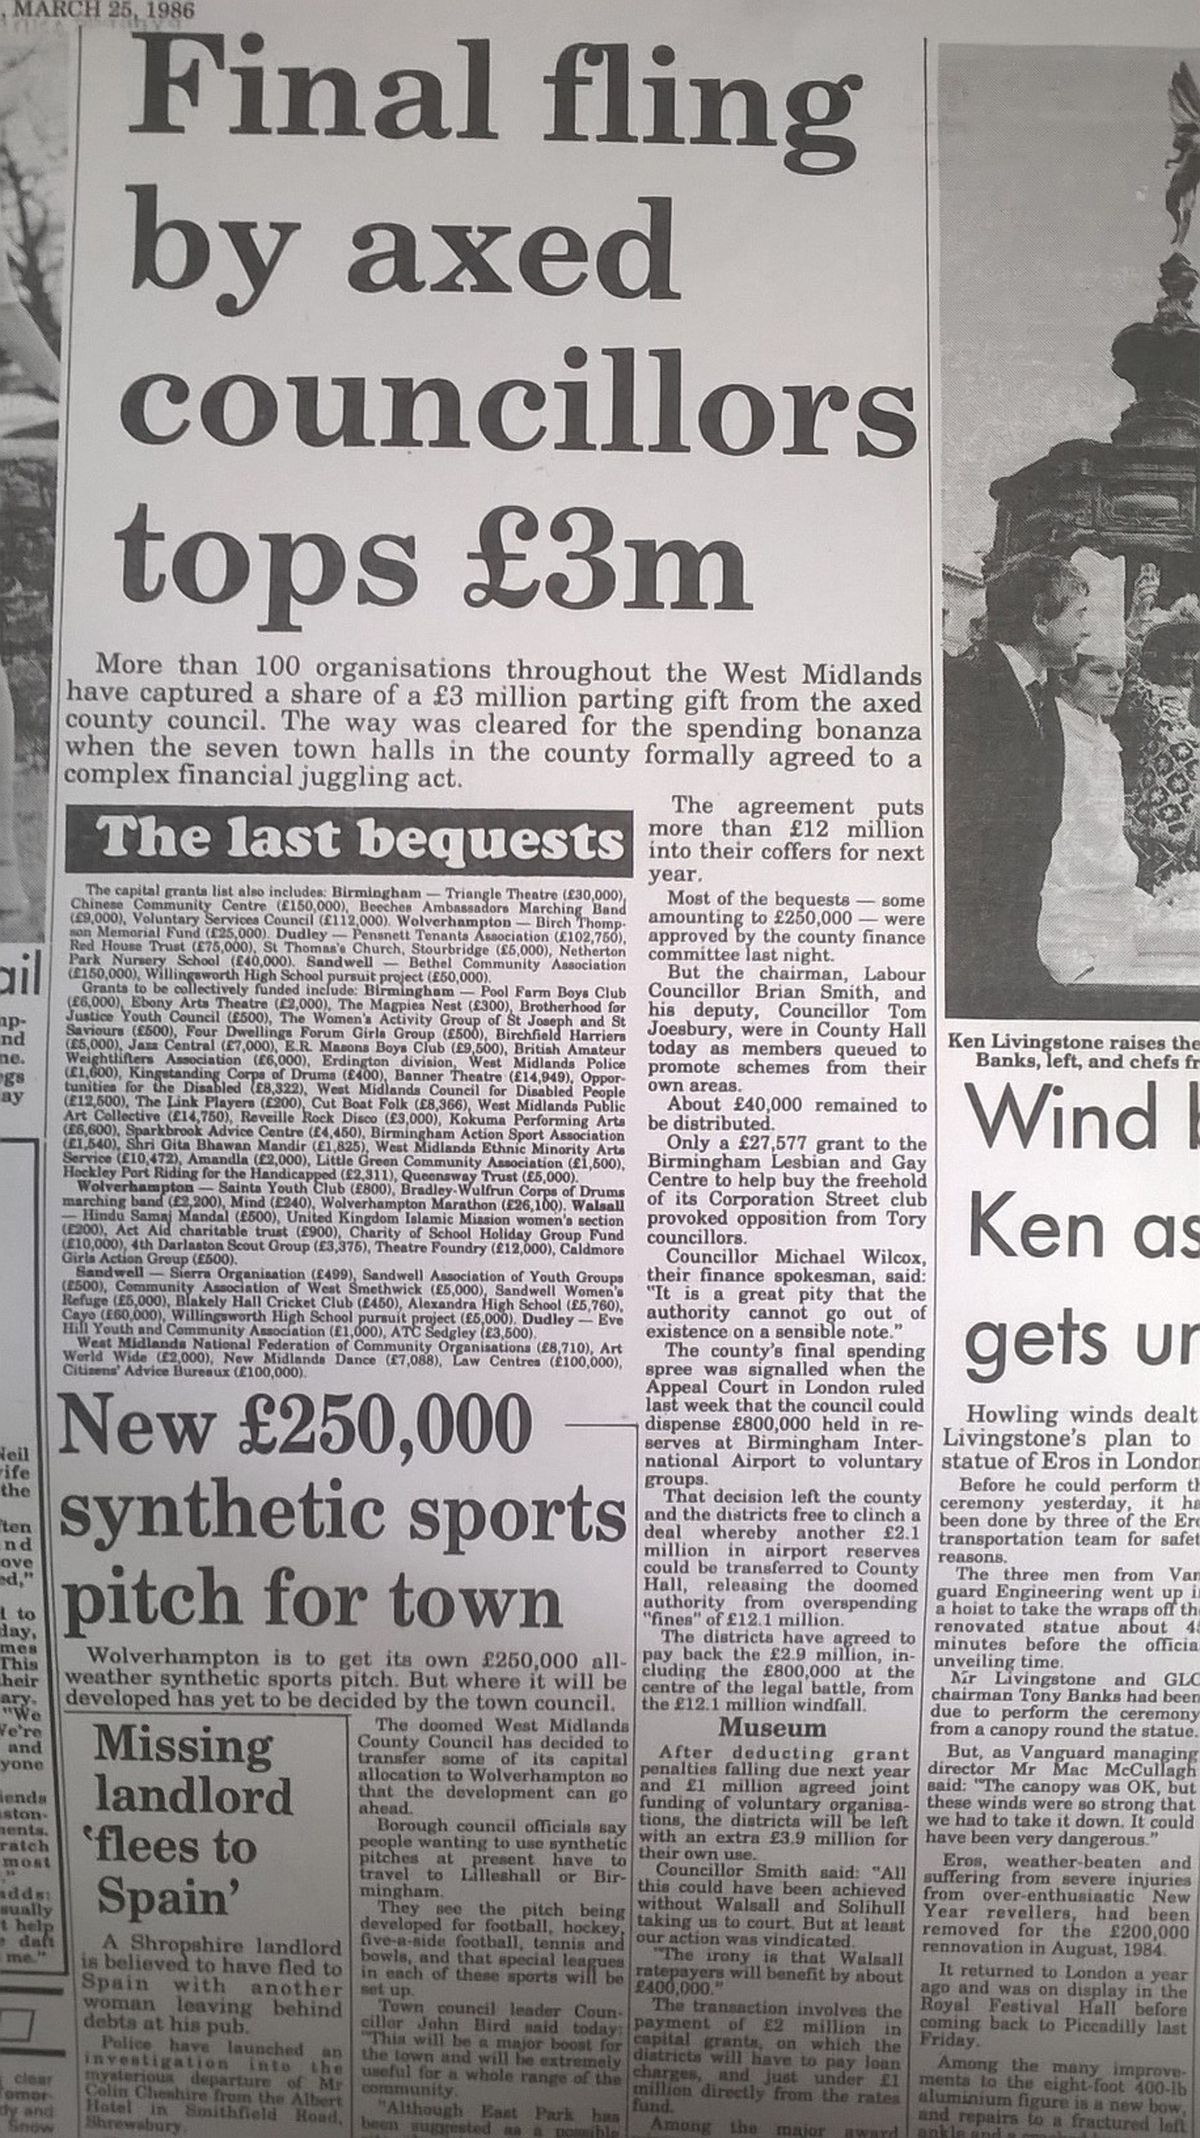 How the Express & Star reported the demise of the West Midlands County Council